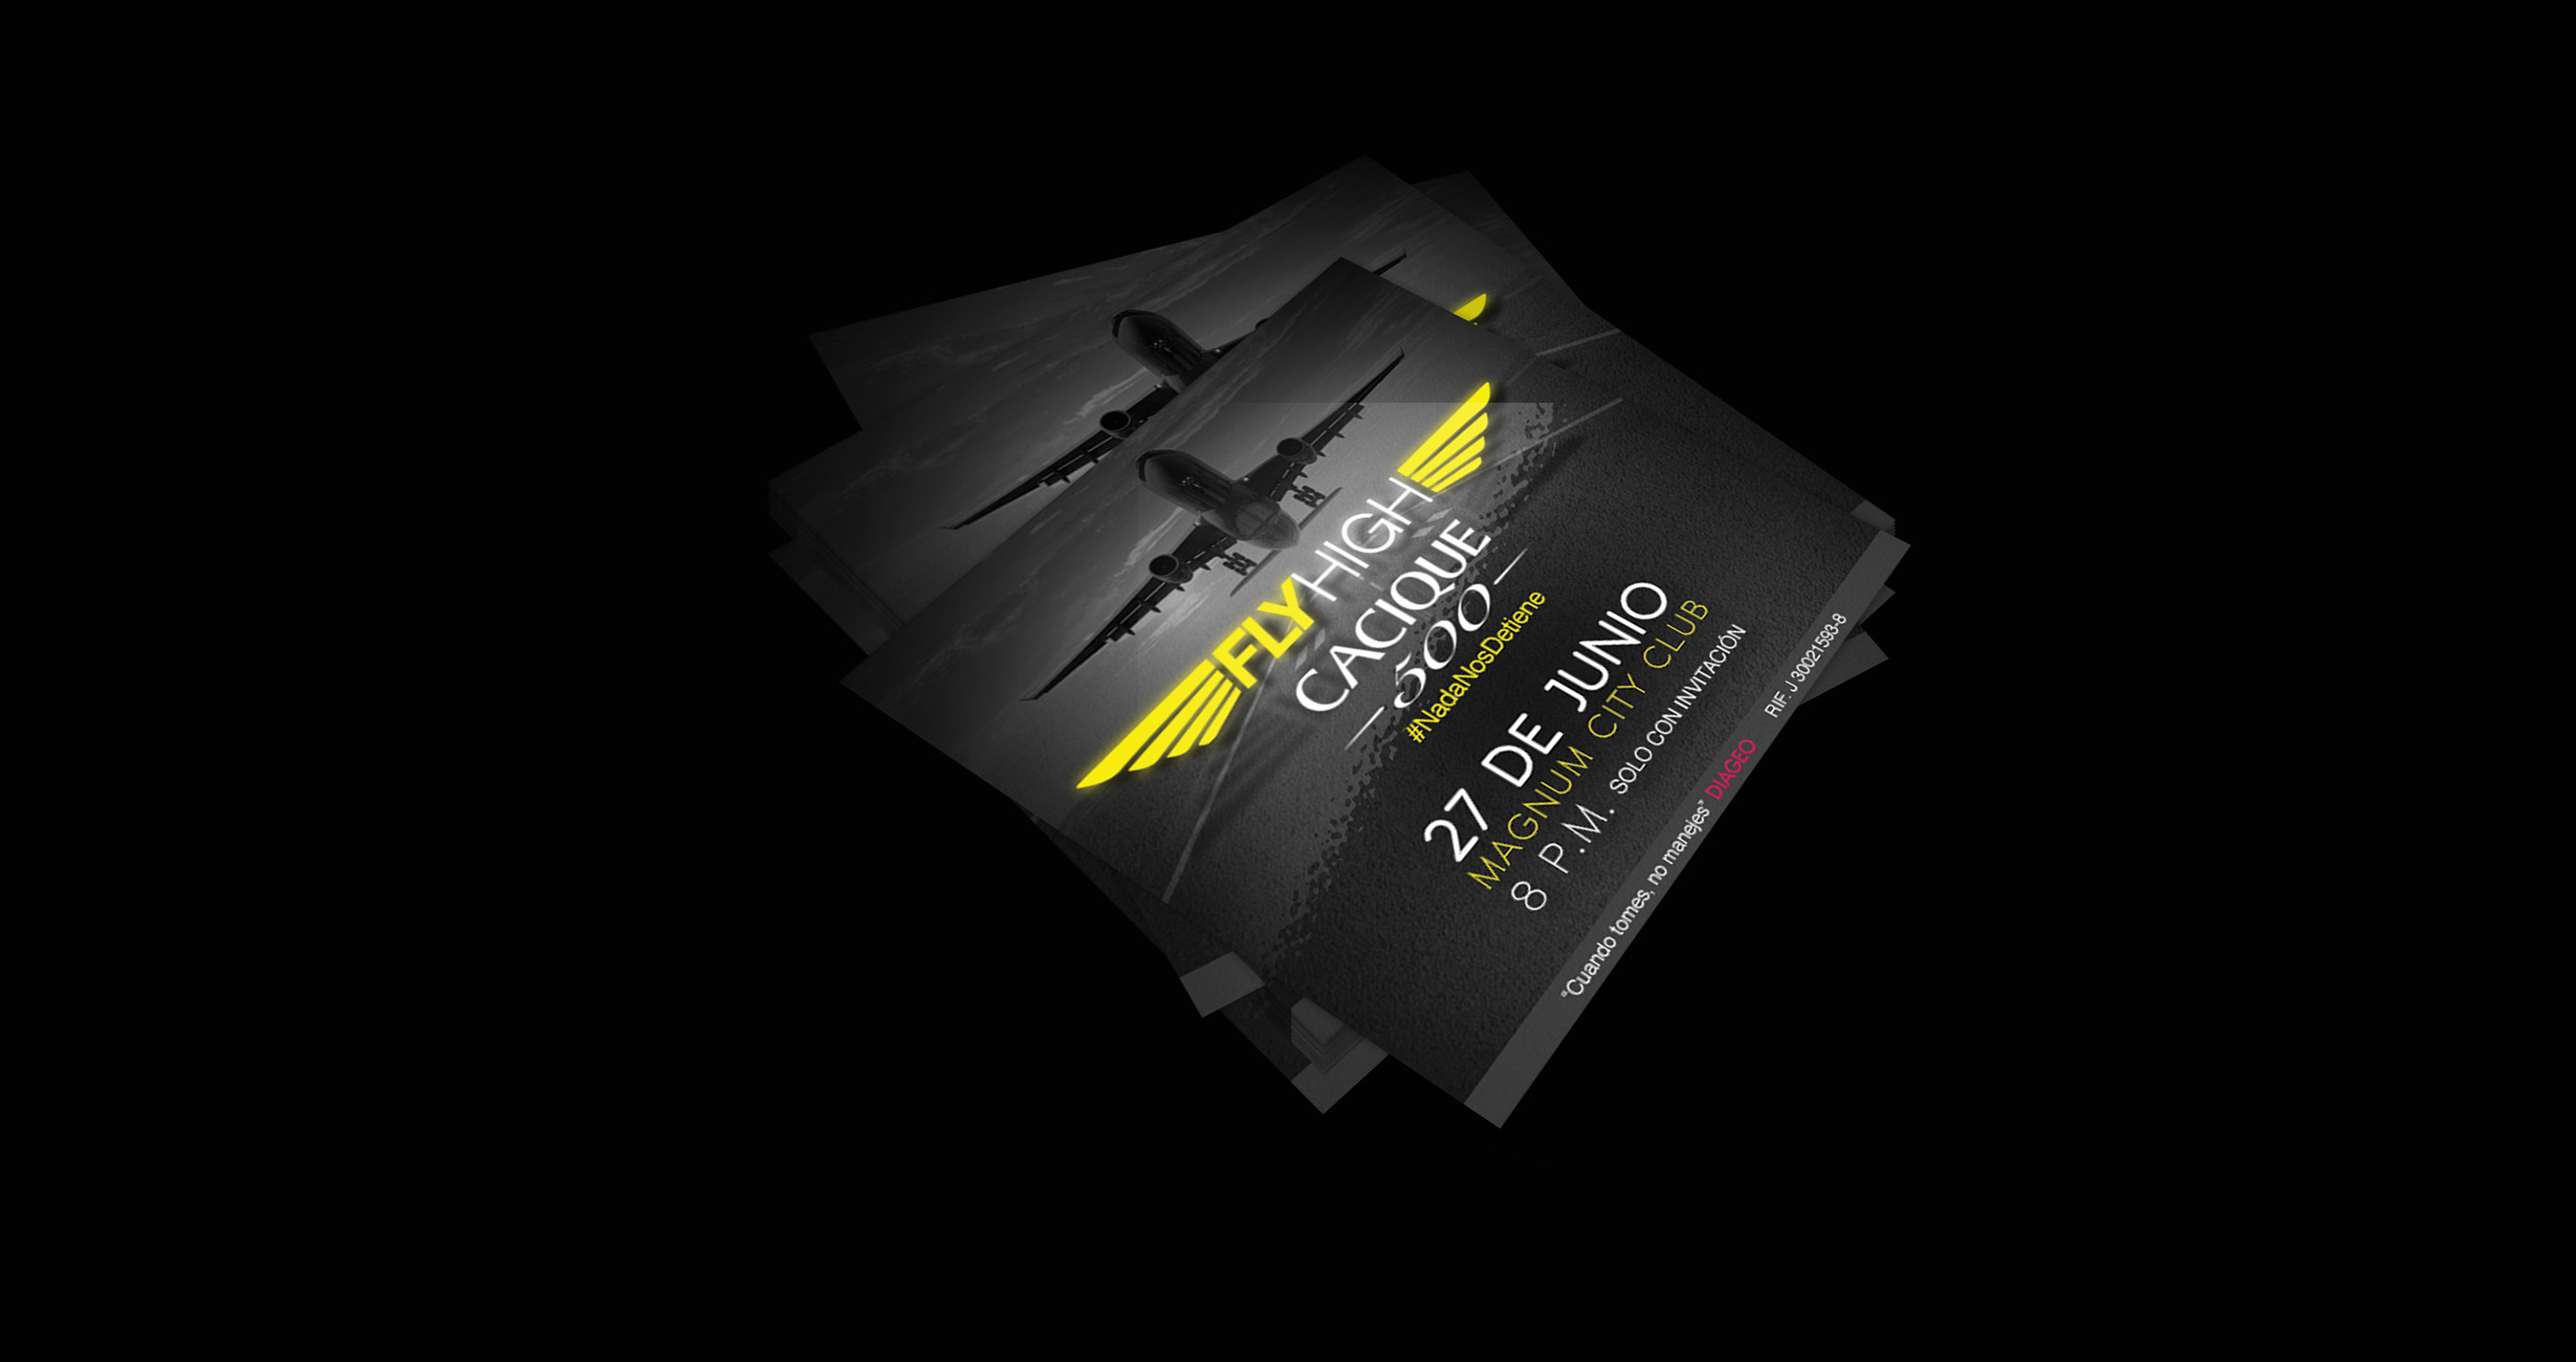 Fly high event design and branding